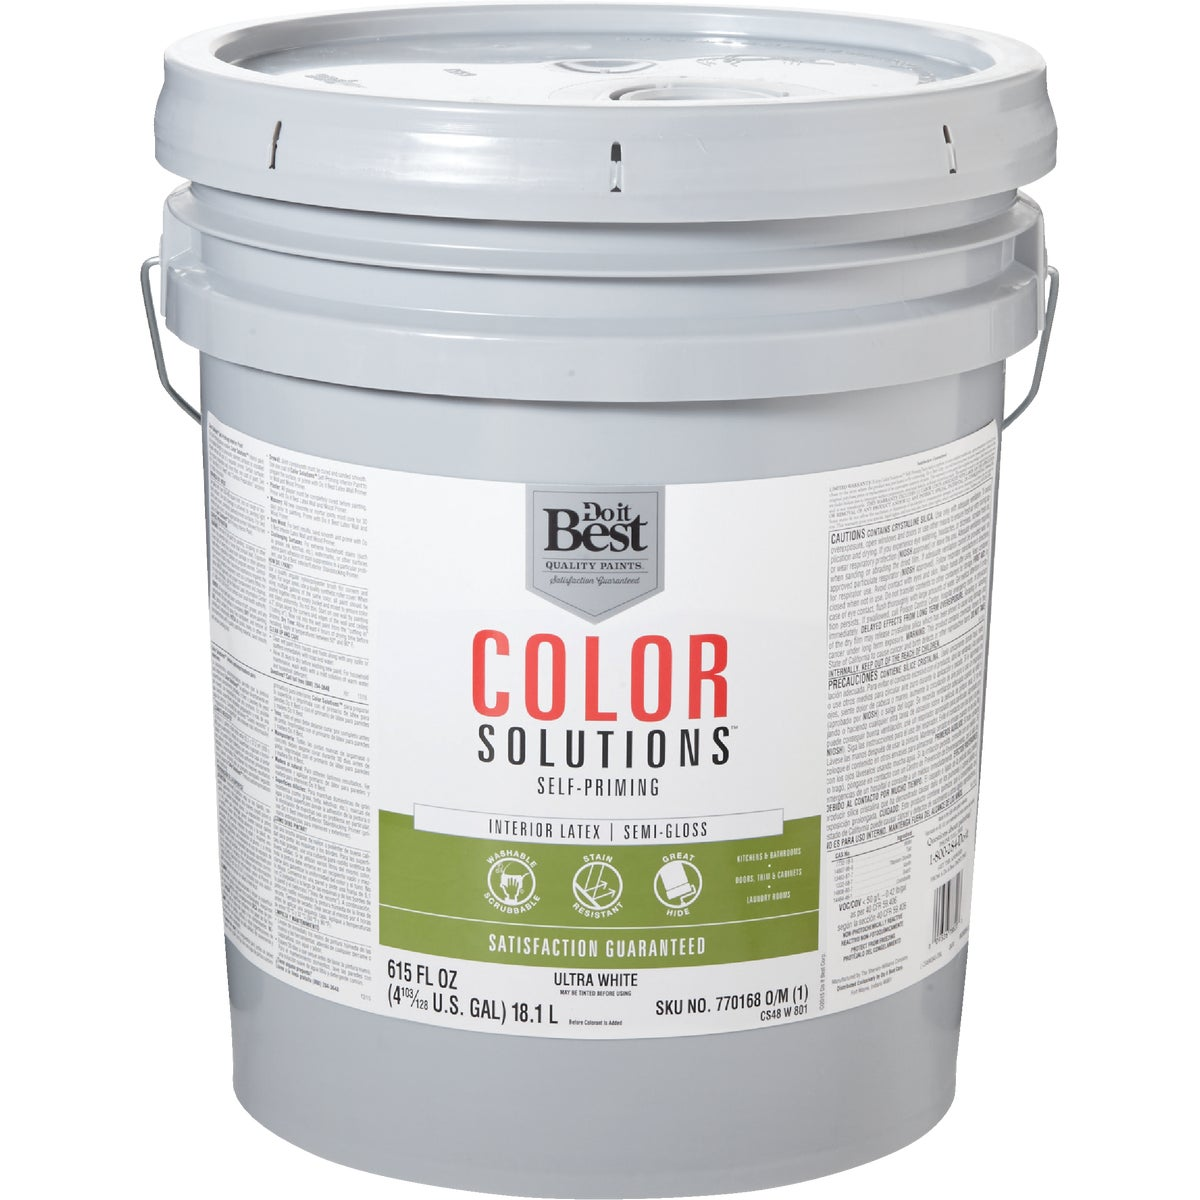 INT S/G ULTRA WHT PAINT - CS48W0801-20 by Do it Best